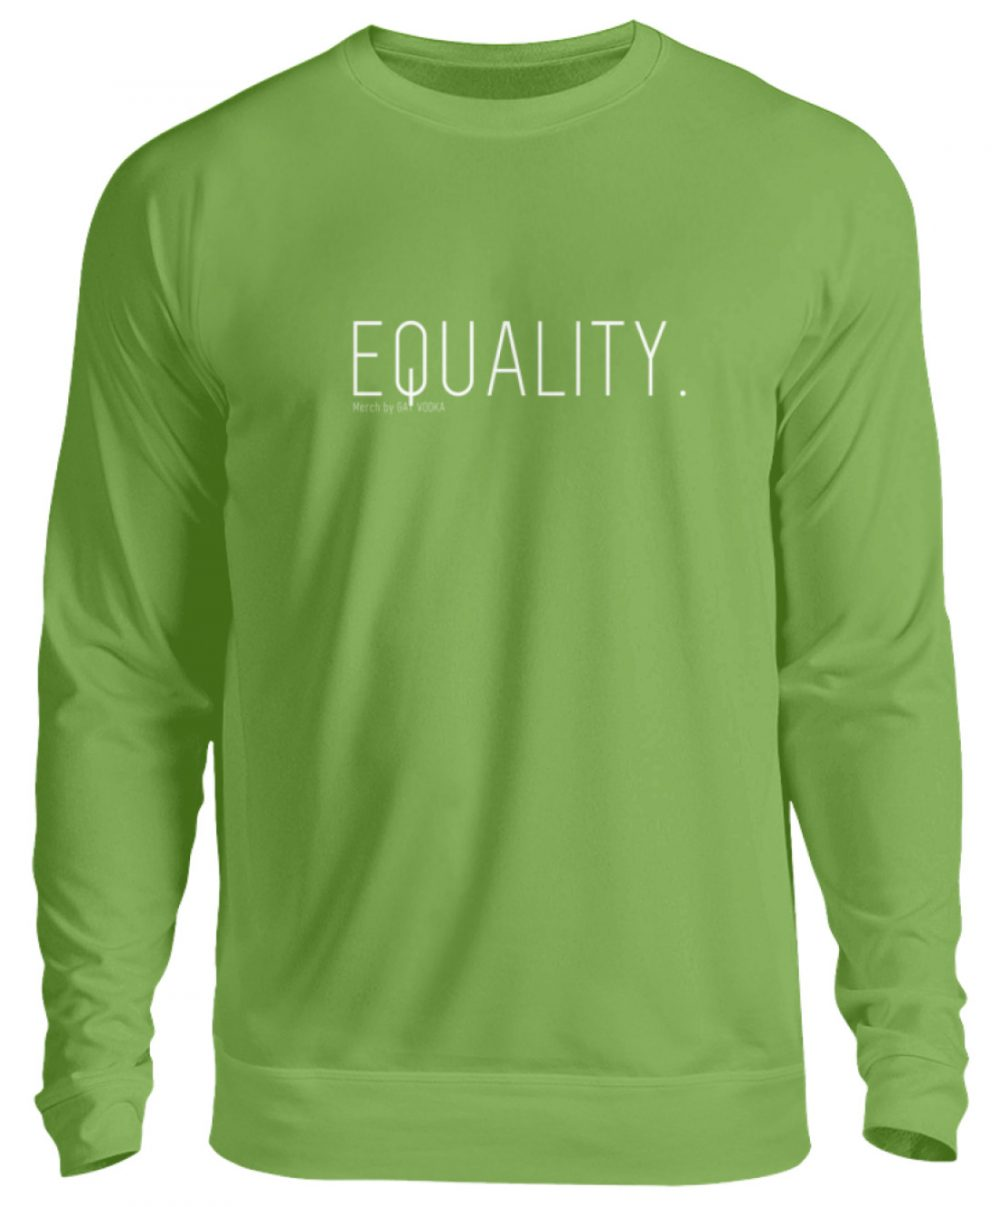 EQUALITY. - Unisex Pullover-1646